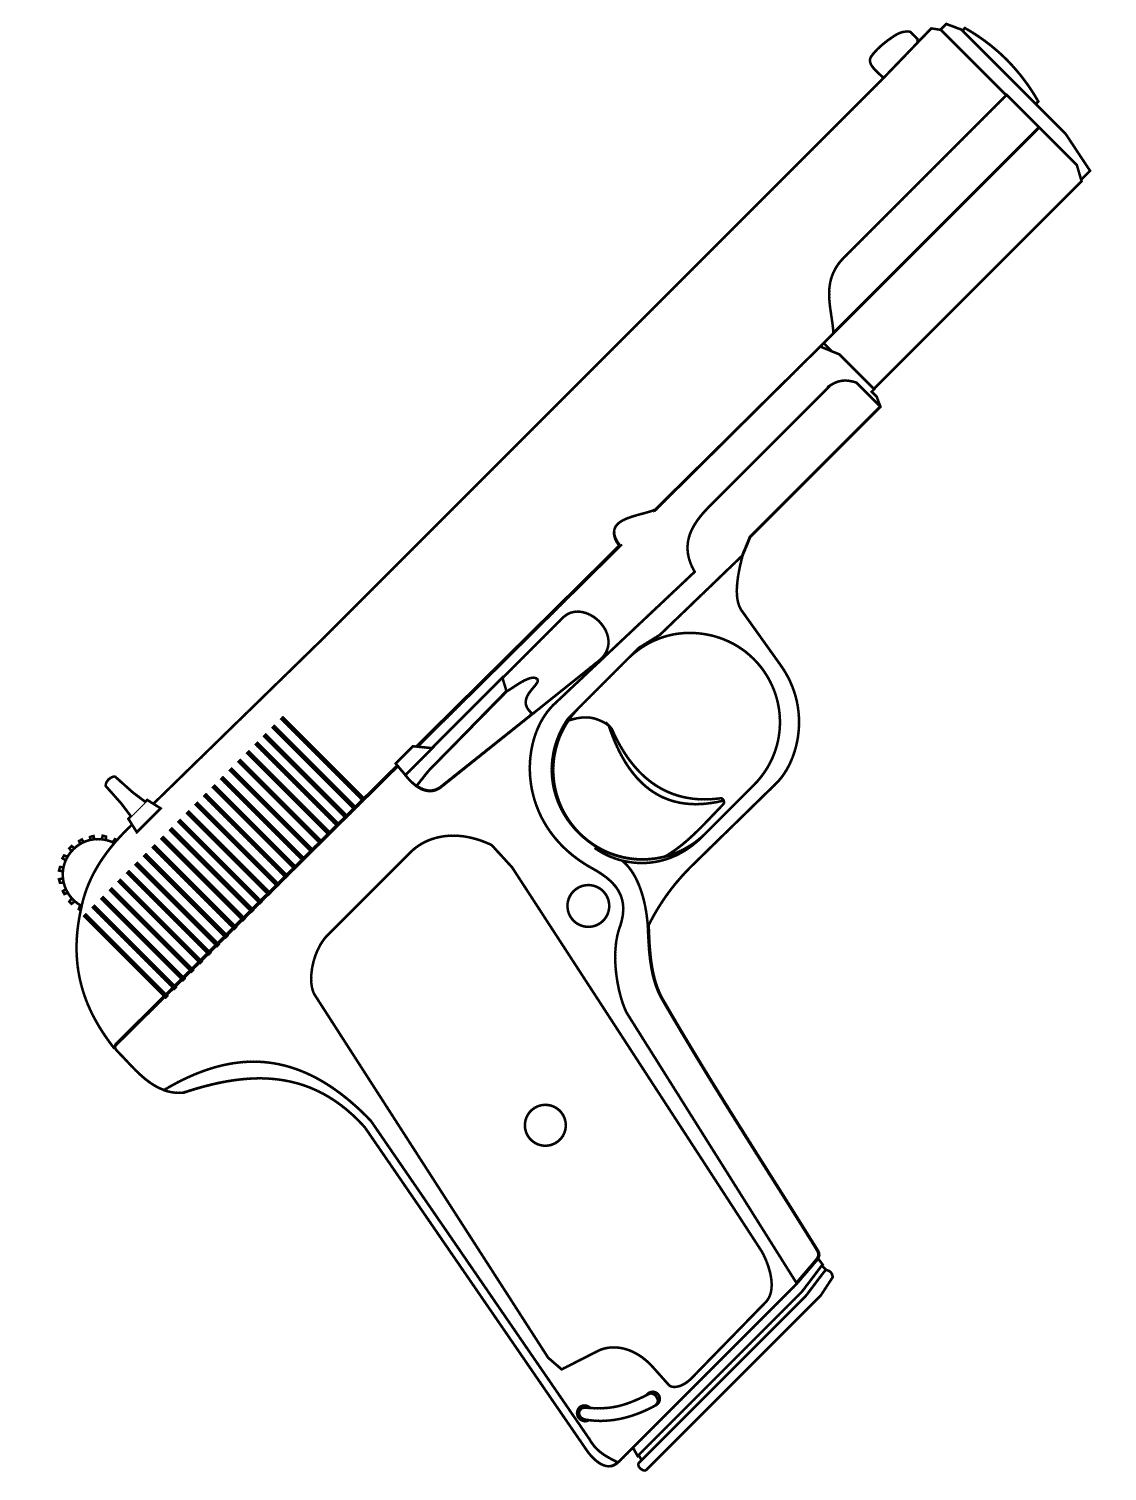 gun coloring pictures gun coloring pages download and print for free pictures gun coloring